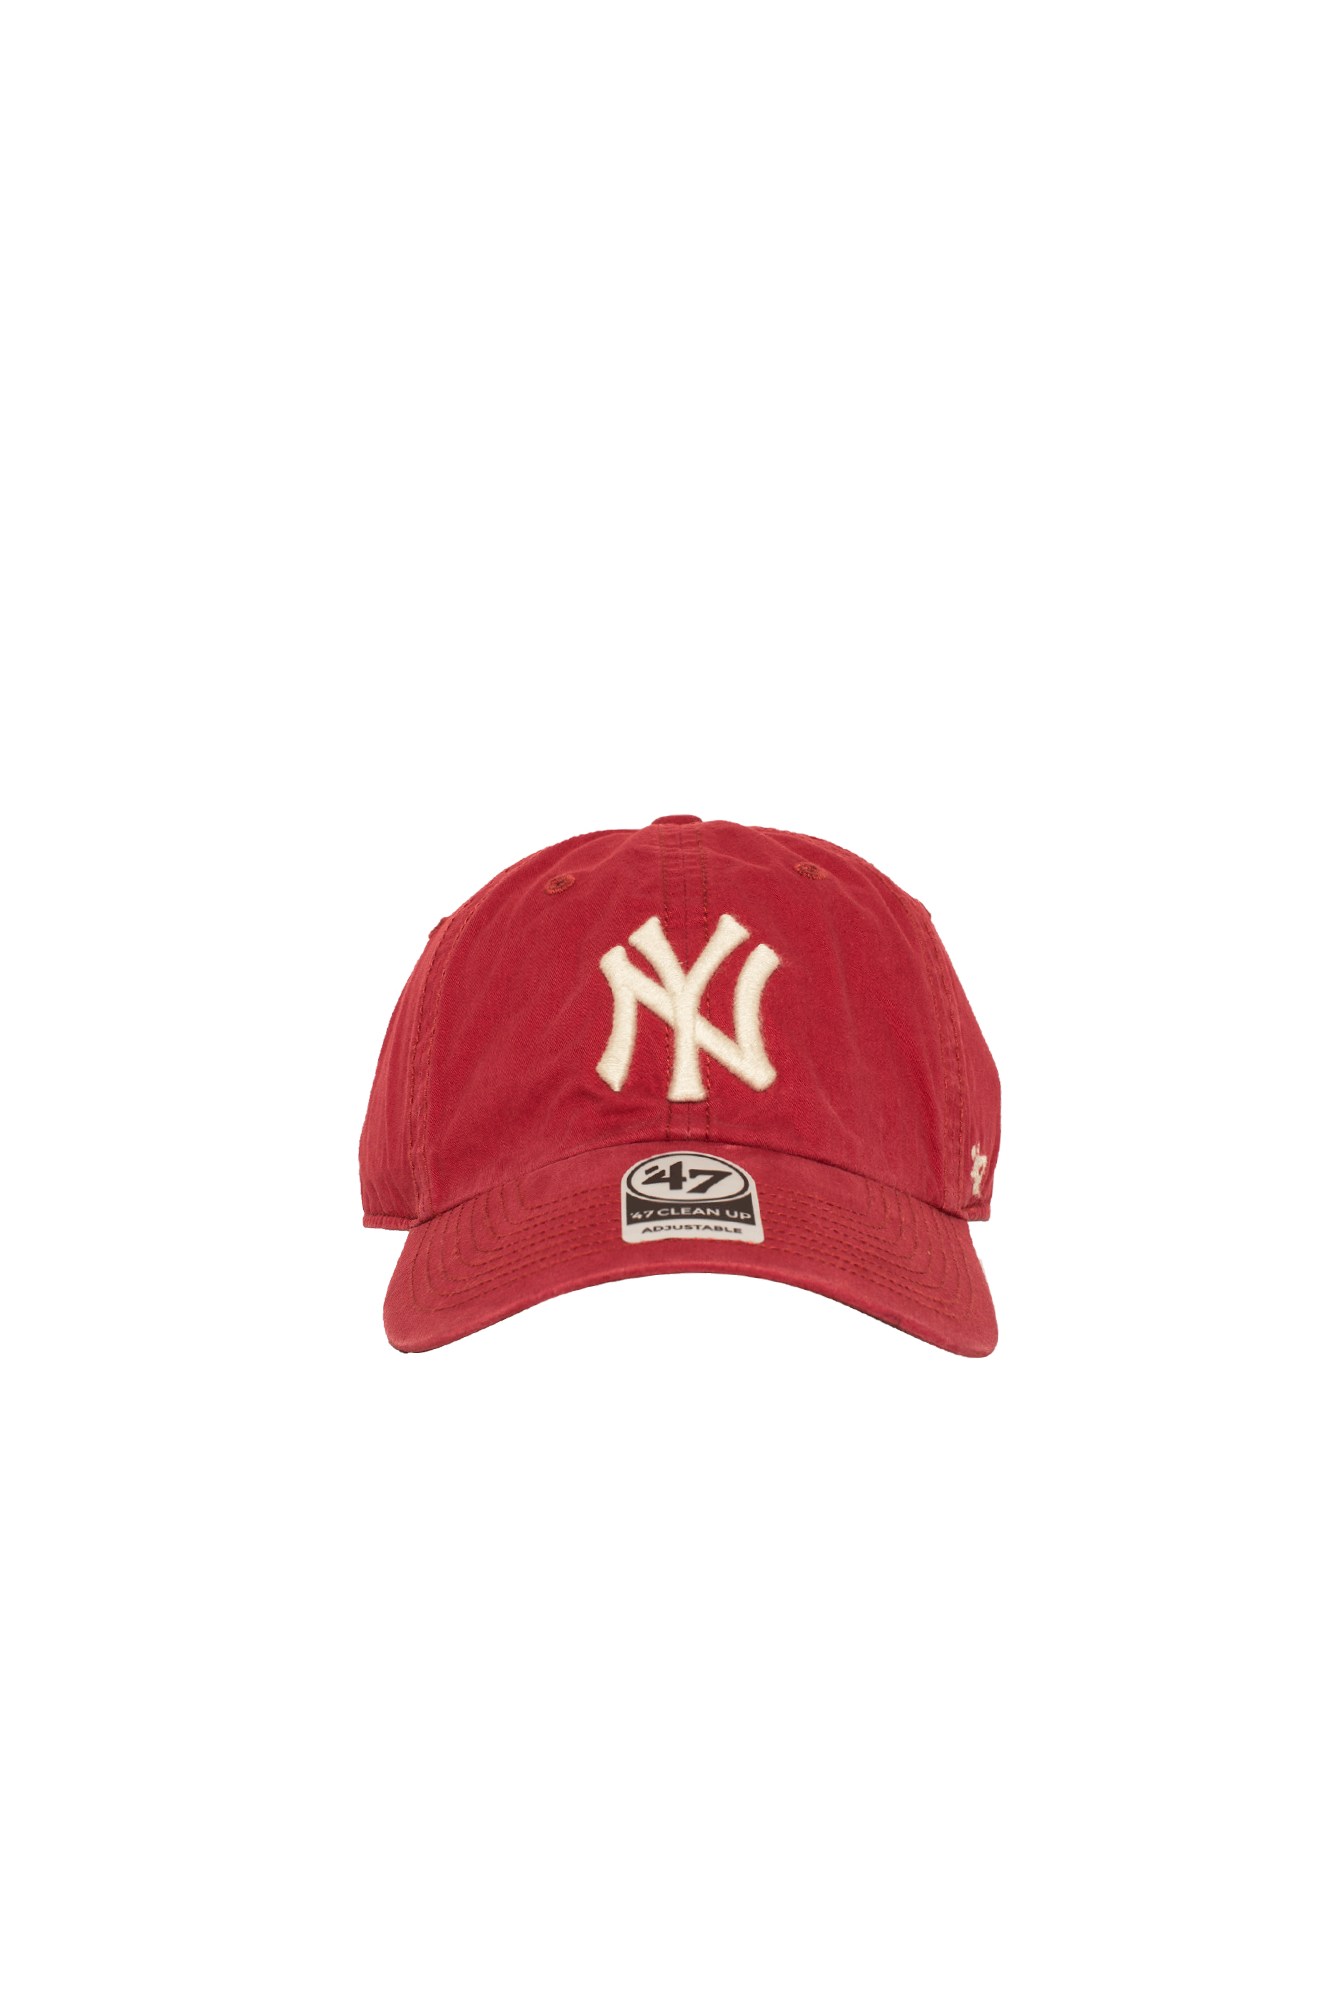 47 Hats Hudson Clean Up New York Yankees Red 47-B-HUDSN17#OWS#XY#OS - One Block Down